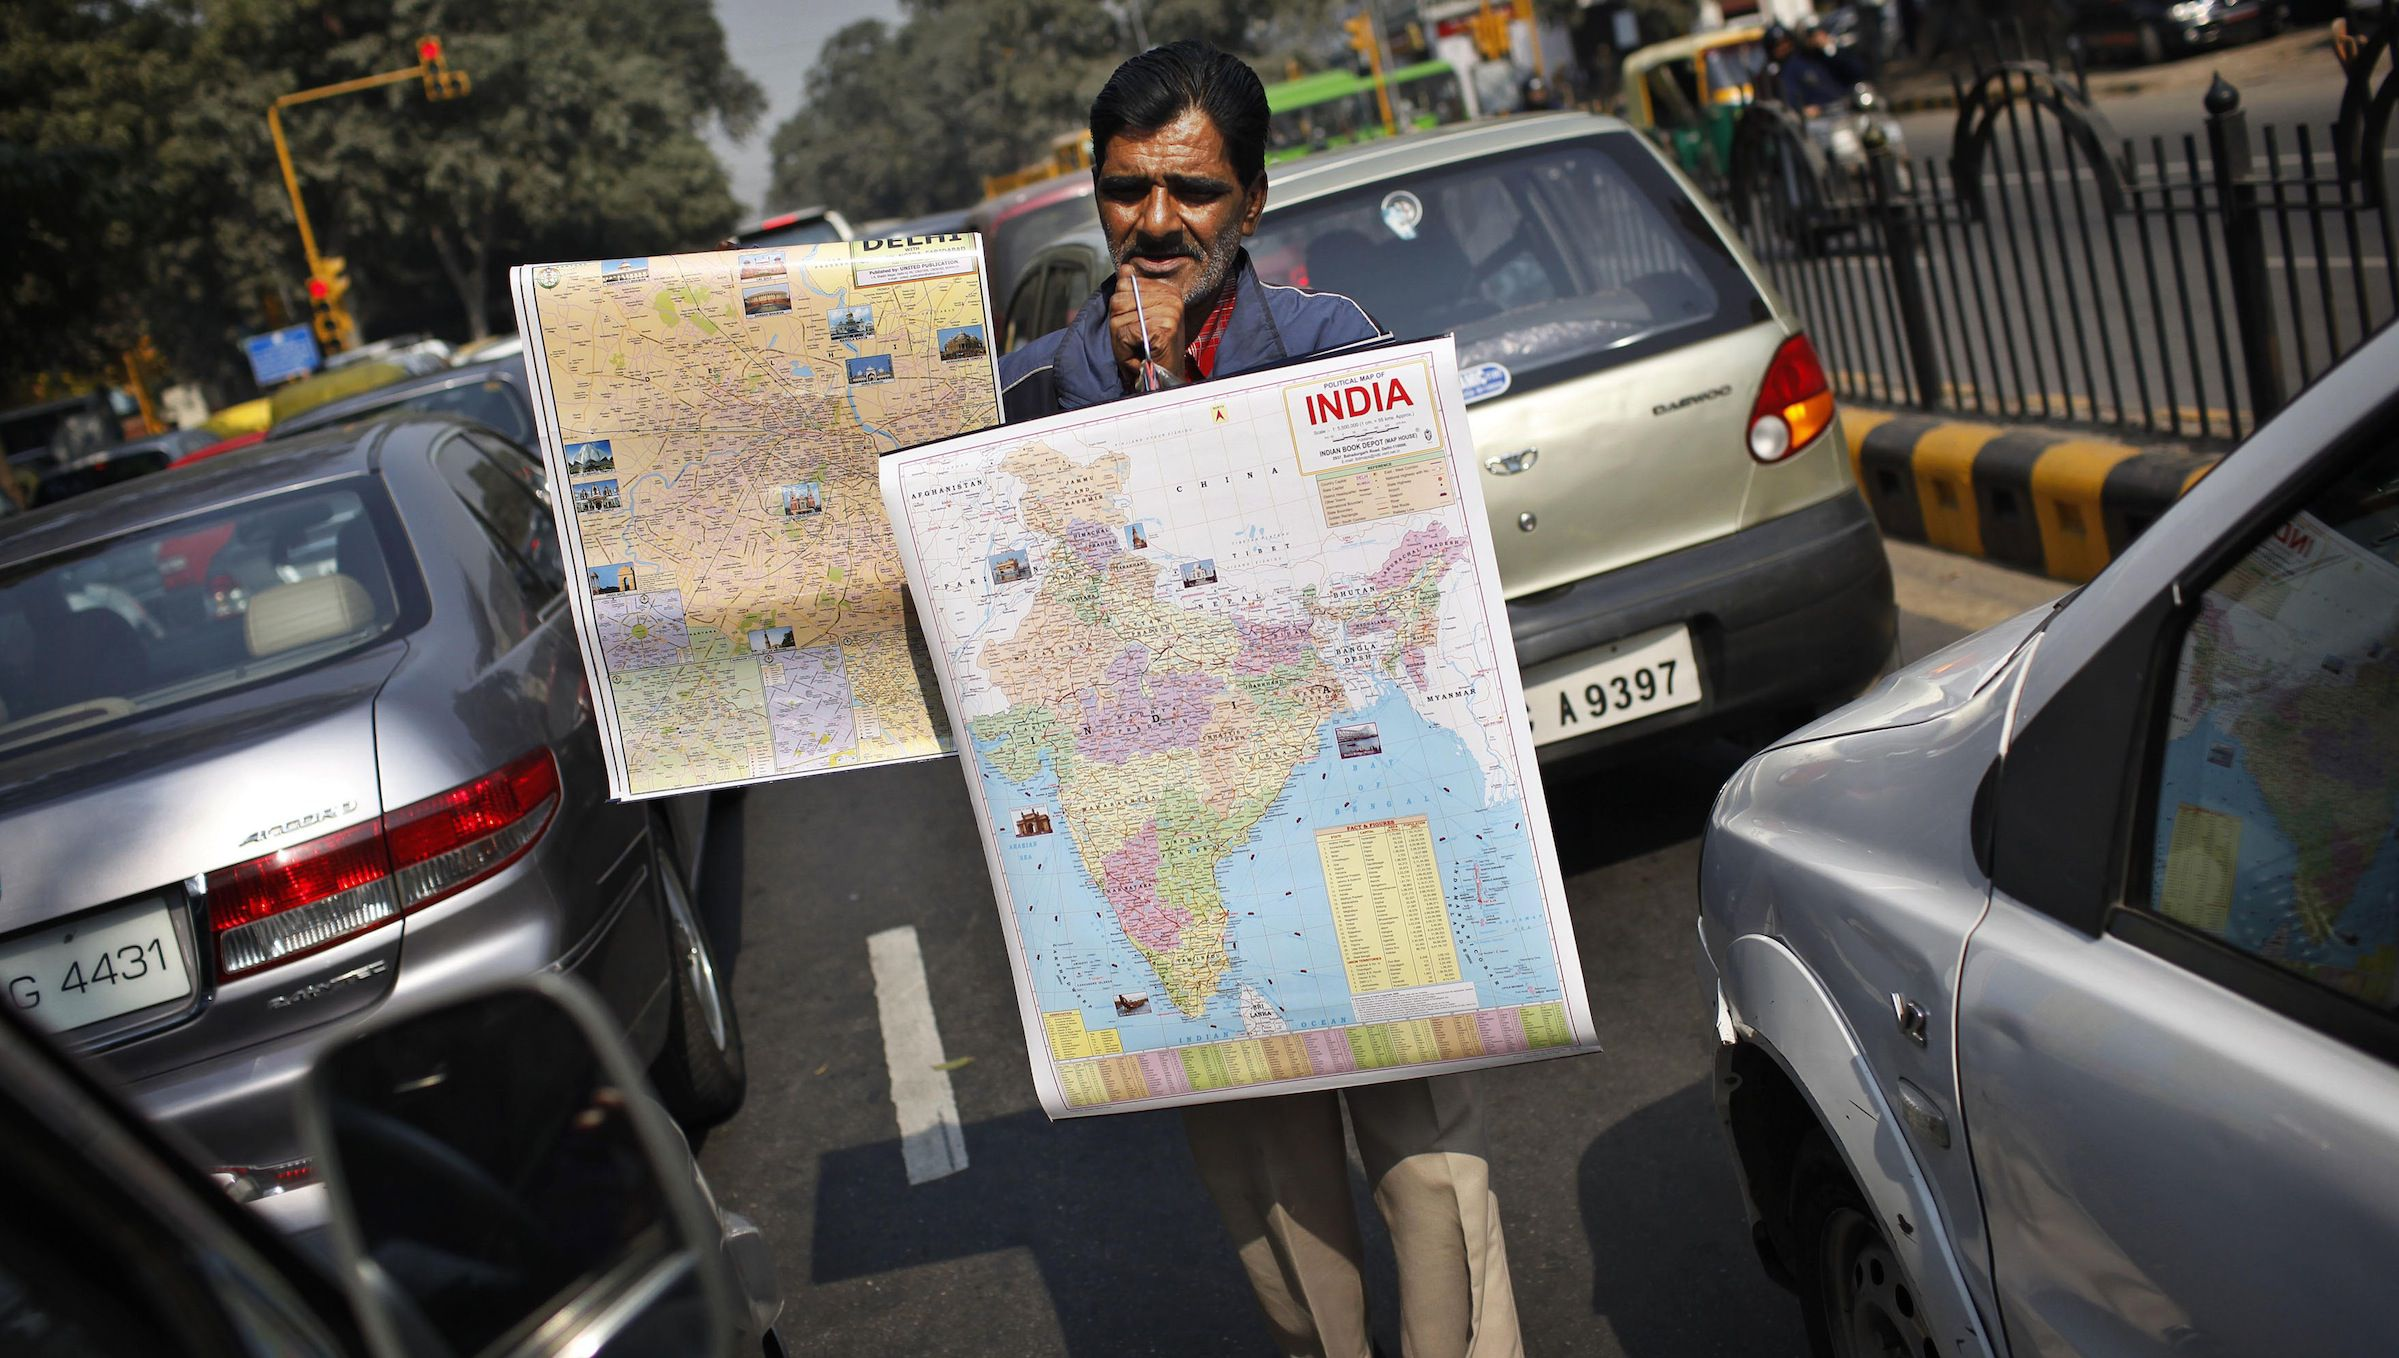 An Indian street vendor tries to sell maps of India and the city of New Delhi in a traffic jam near Connaught Place in New Delhi, India, Friday, Jan. 29, 2010. (AP Photo/Kevin Frayer)